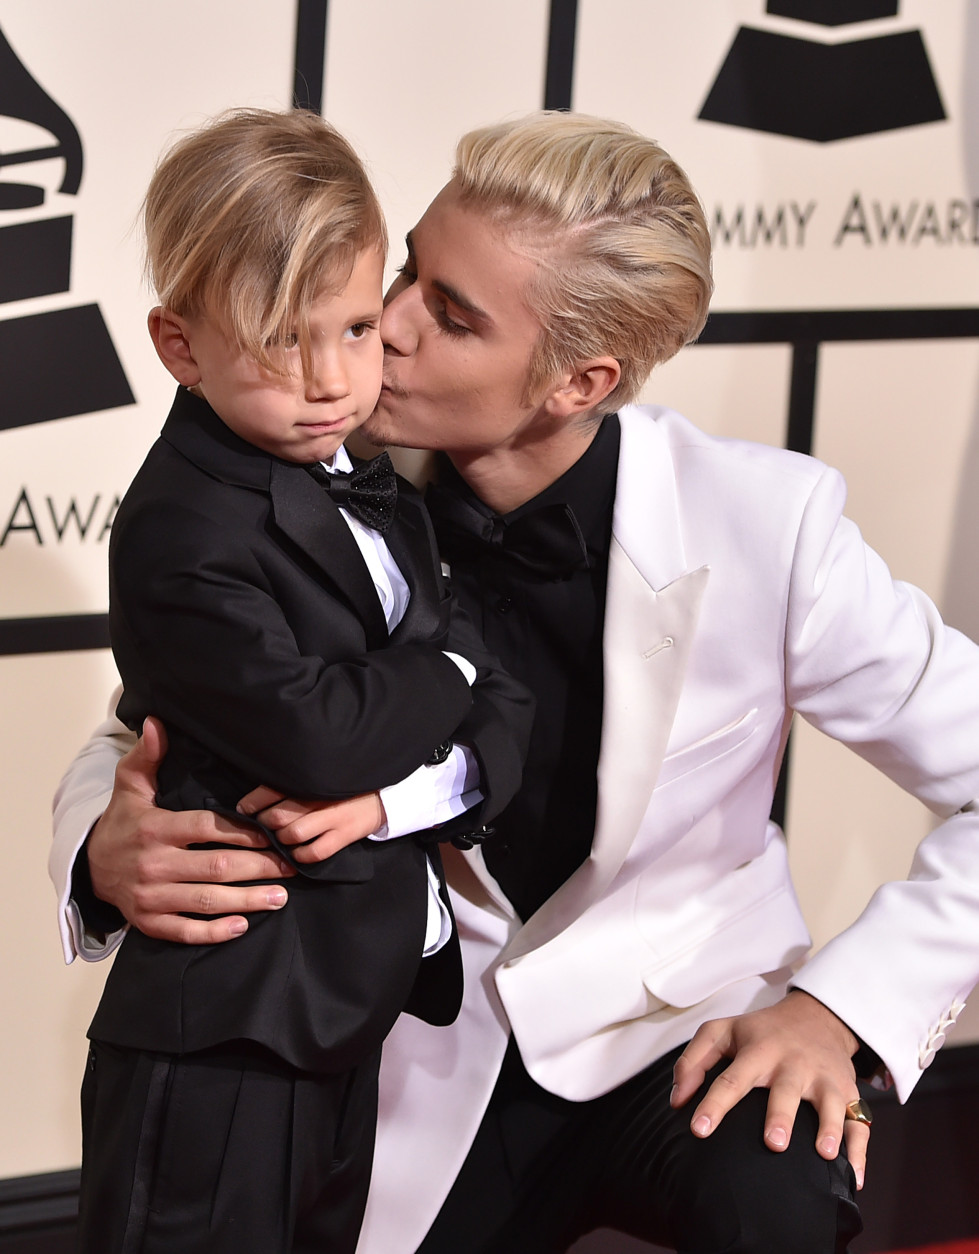 Jaxon Bieber, left, and Justin Bieber arrive at the 58th annual Grammy Awards at the Staples Center on Monday, Feb. 15, 2016, in Los Angeles. (Photo by Jordan Strauss/Invision/AP)